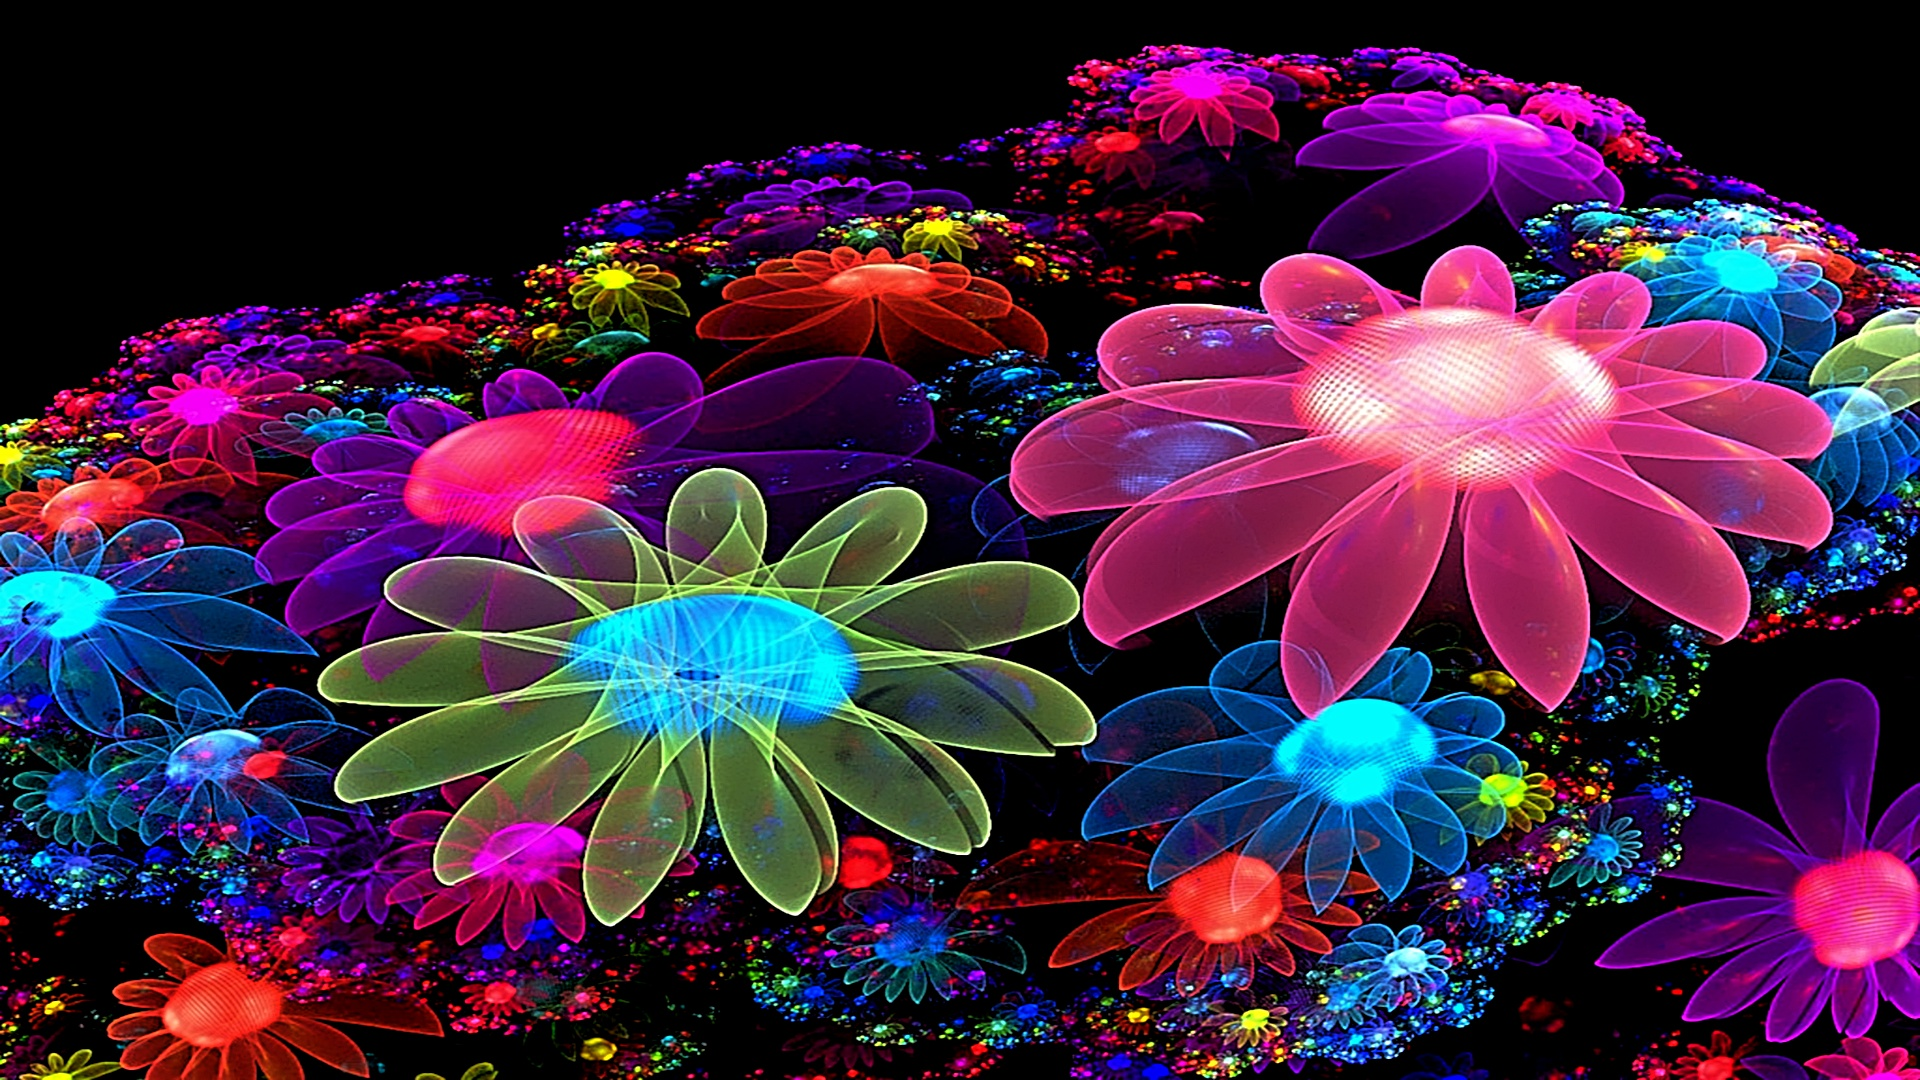 Cool Colorful Flowers Desktop Wallpapers Images 8221 HD 1920x1080